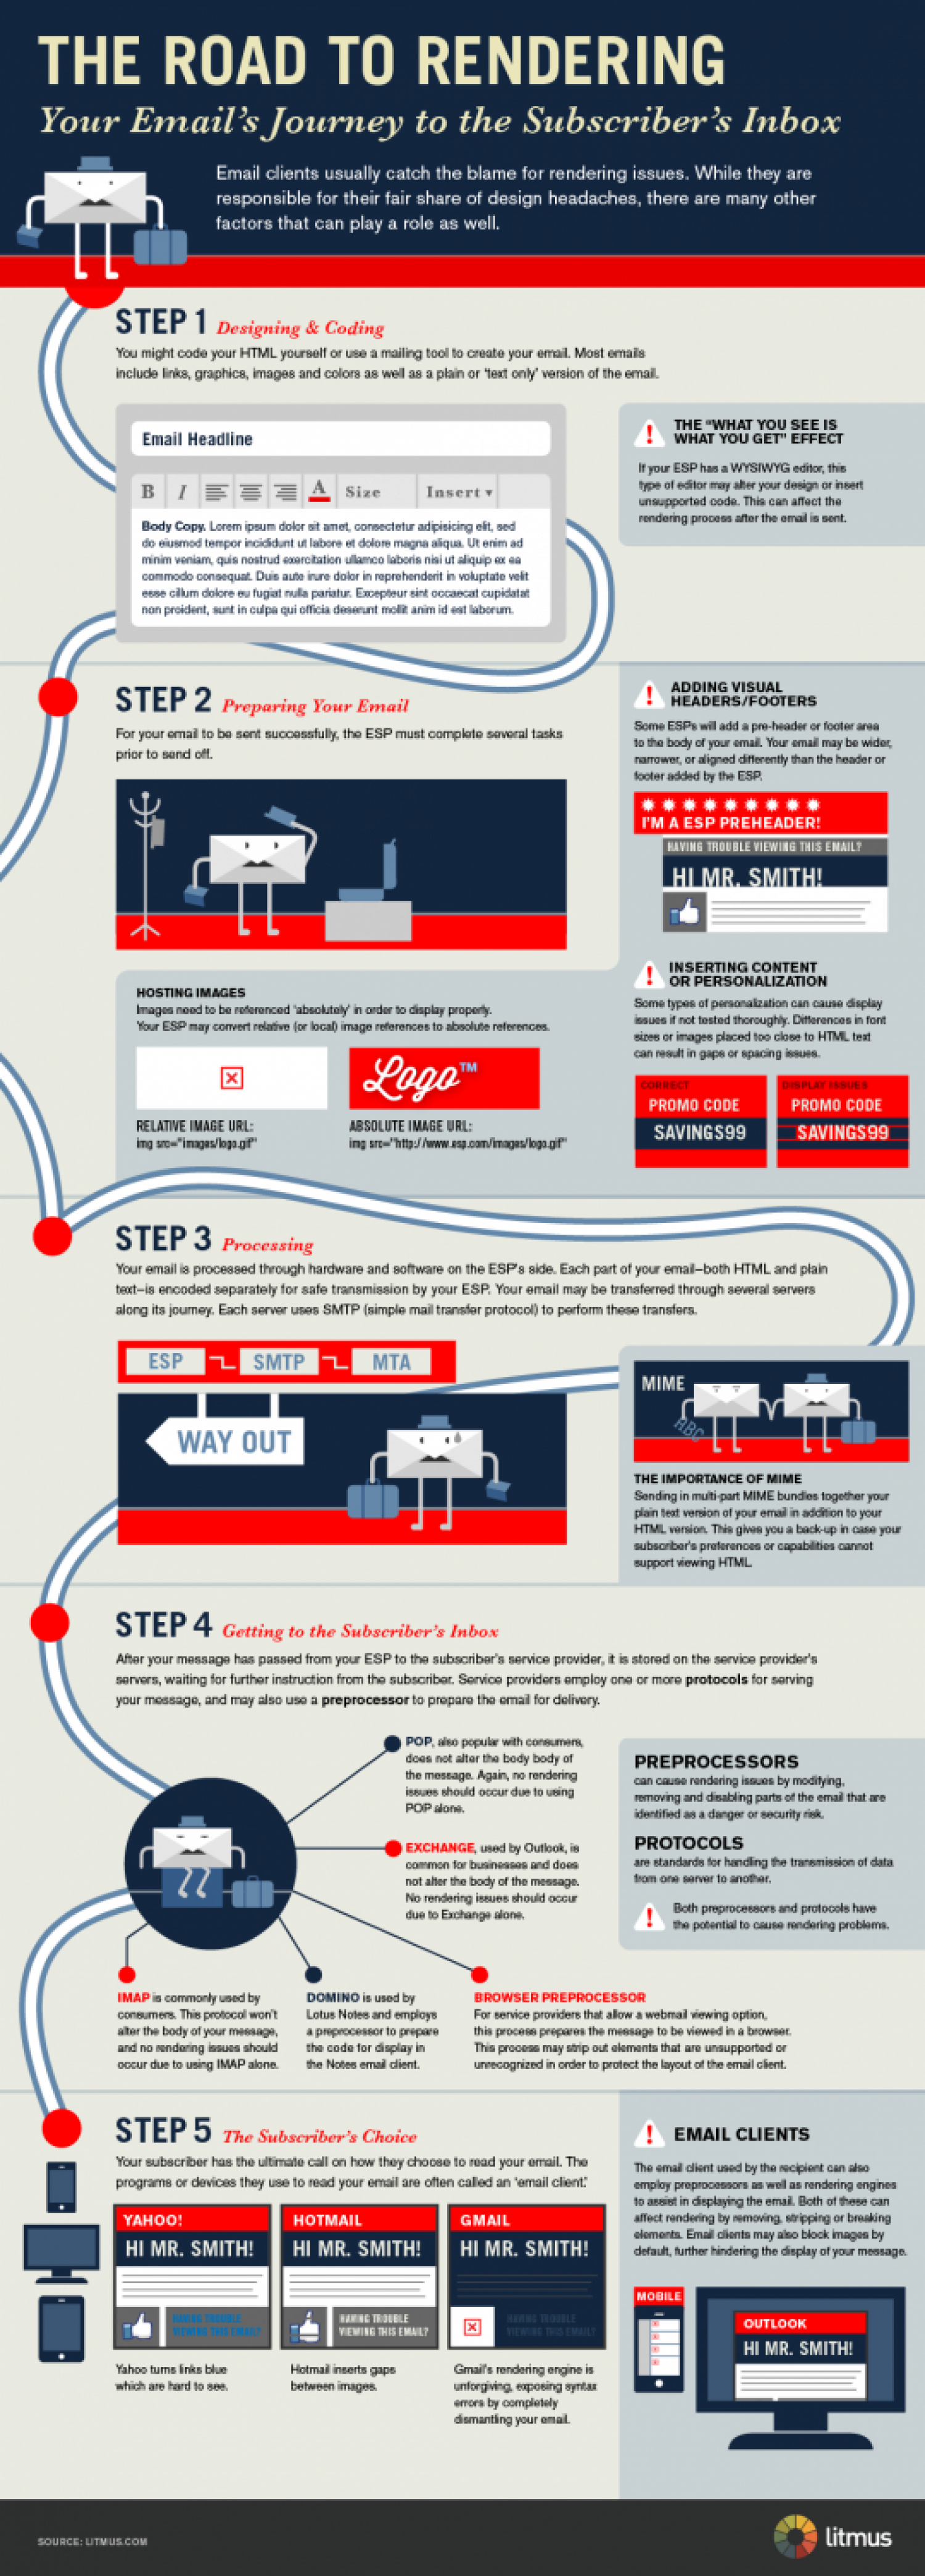 Why Do Email Designs Break? Infographic